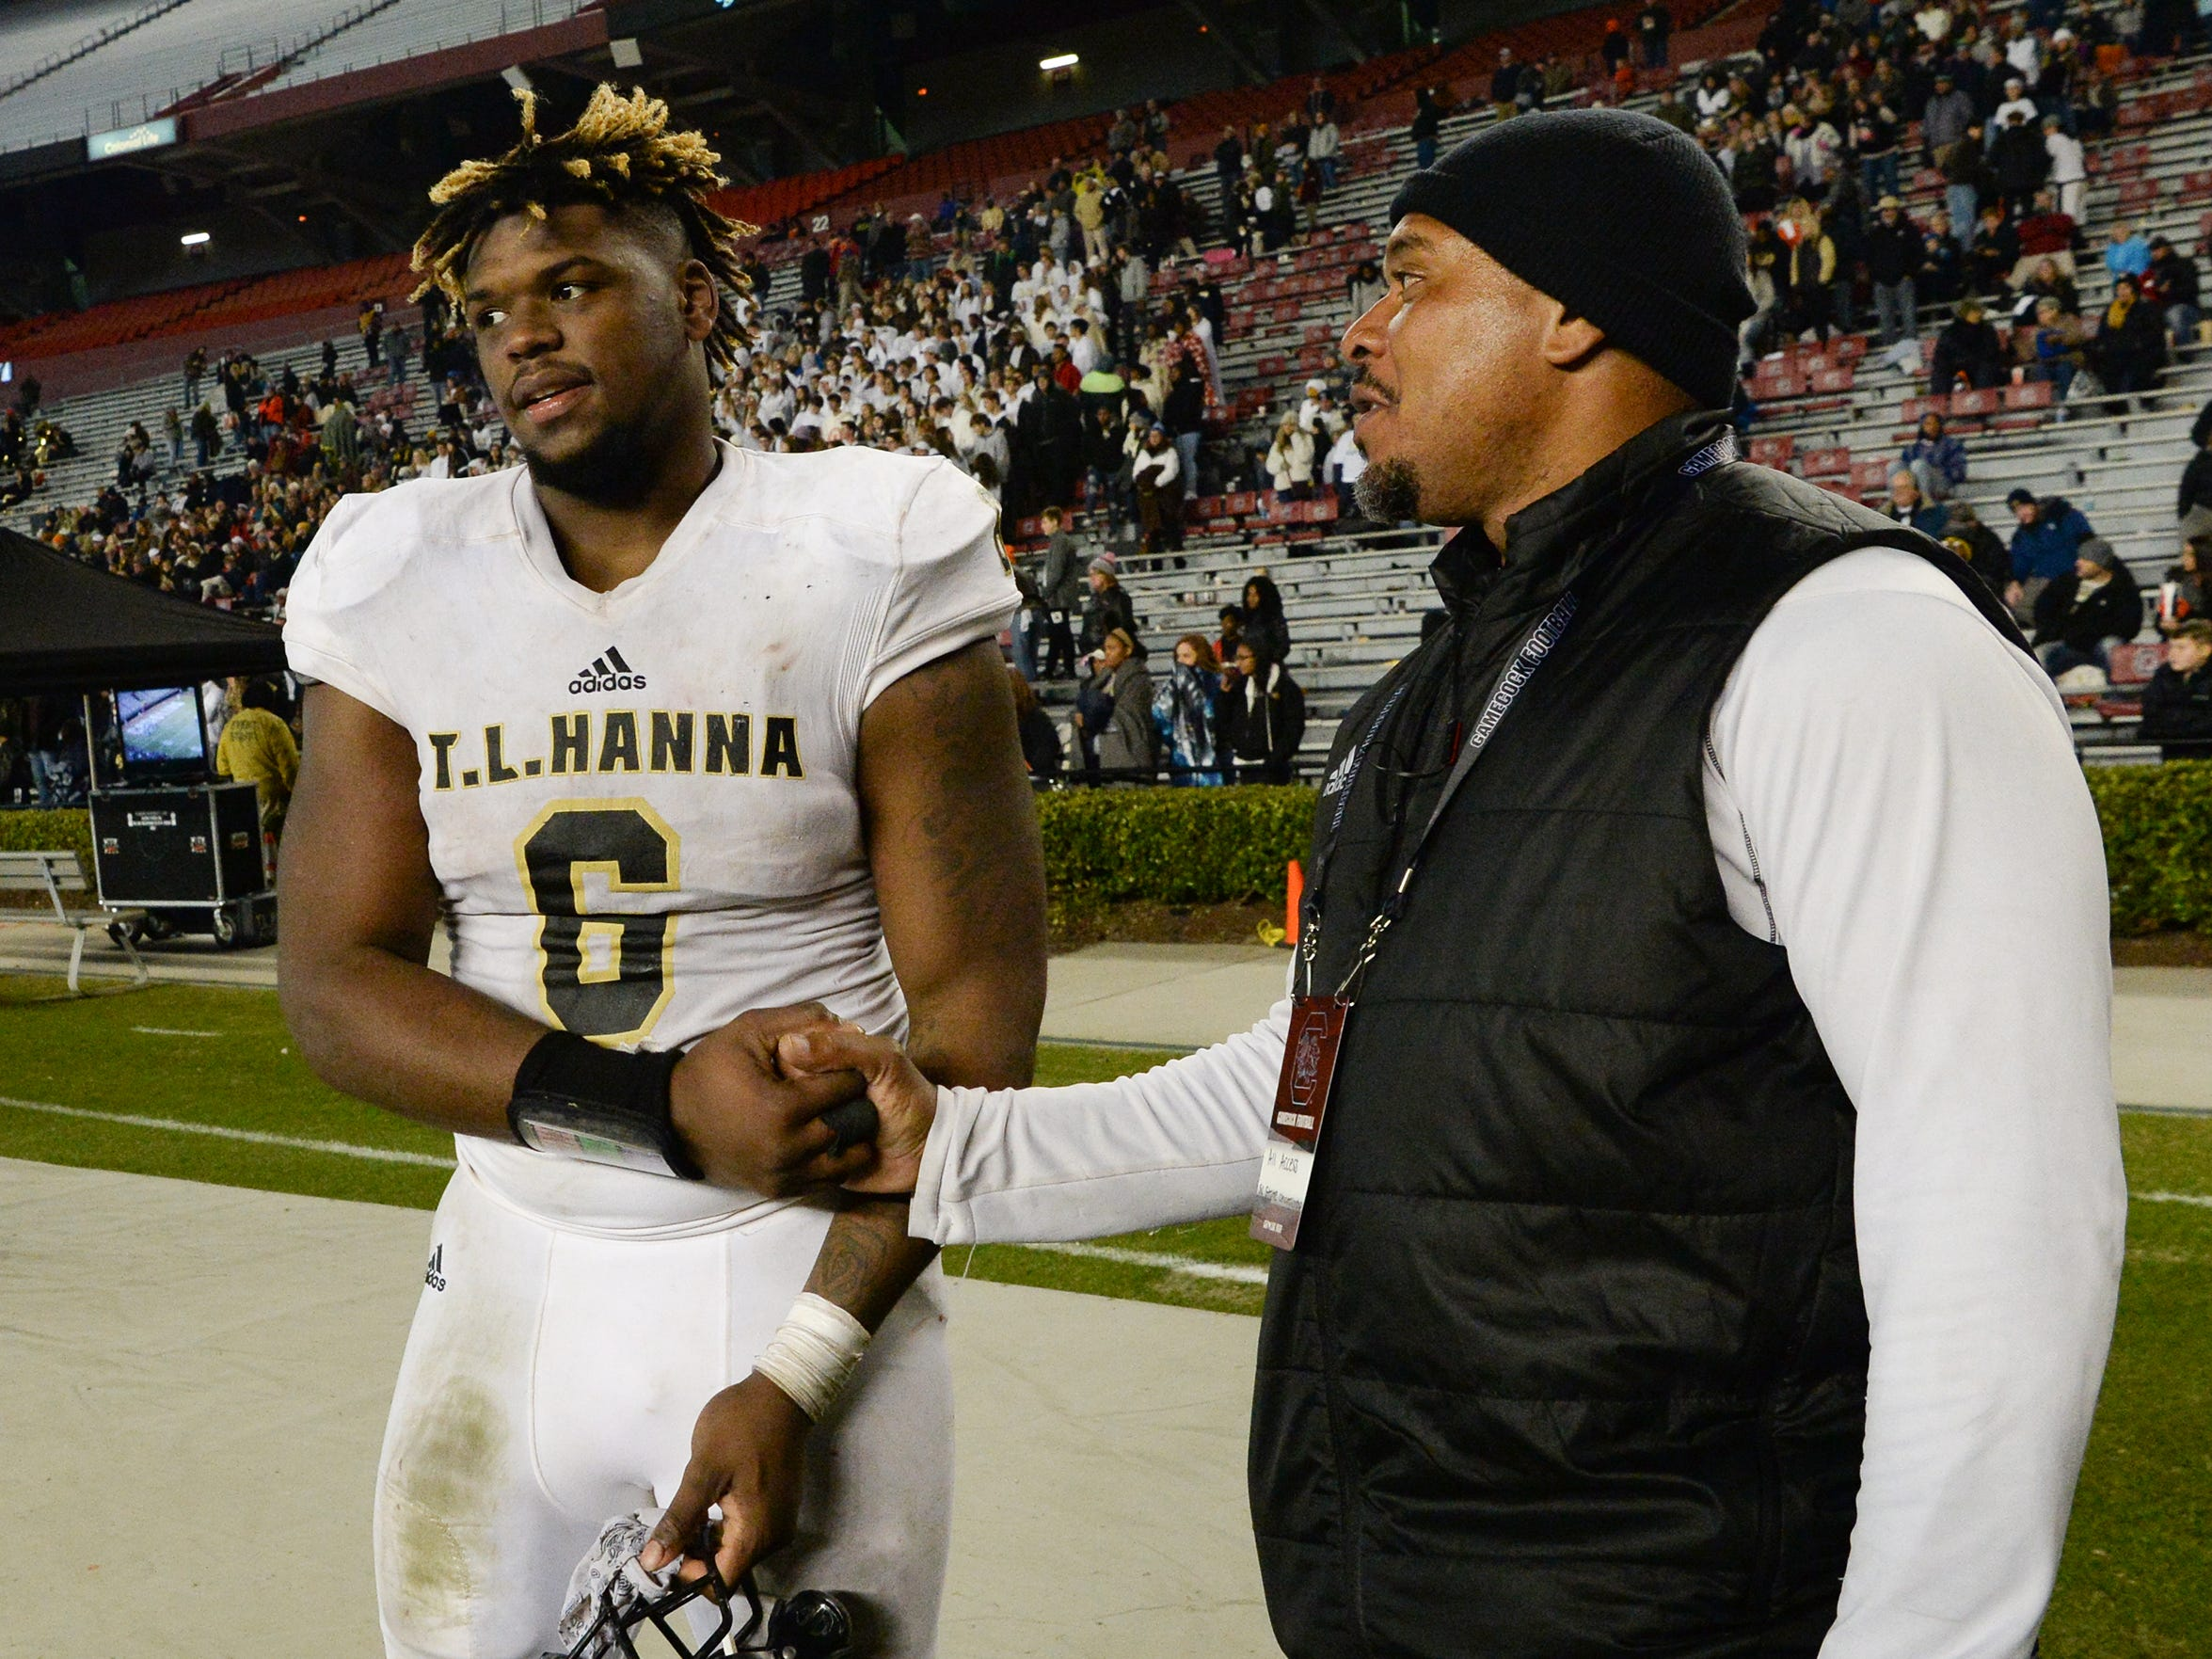 TL Hanna senior Zacch Pickens (6) and former Hanna quarterback Ramon Robinson after the game of the Class AAAAA state championship game at Williams-Brice Stadium in Columbia Saturday, December 8, 2018.